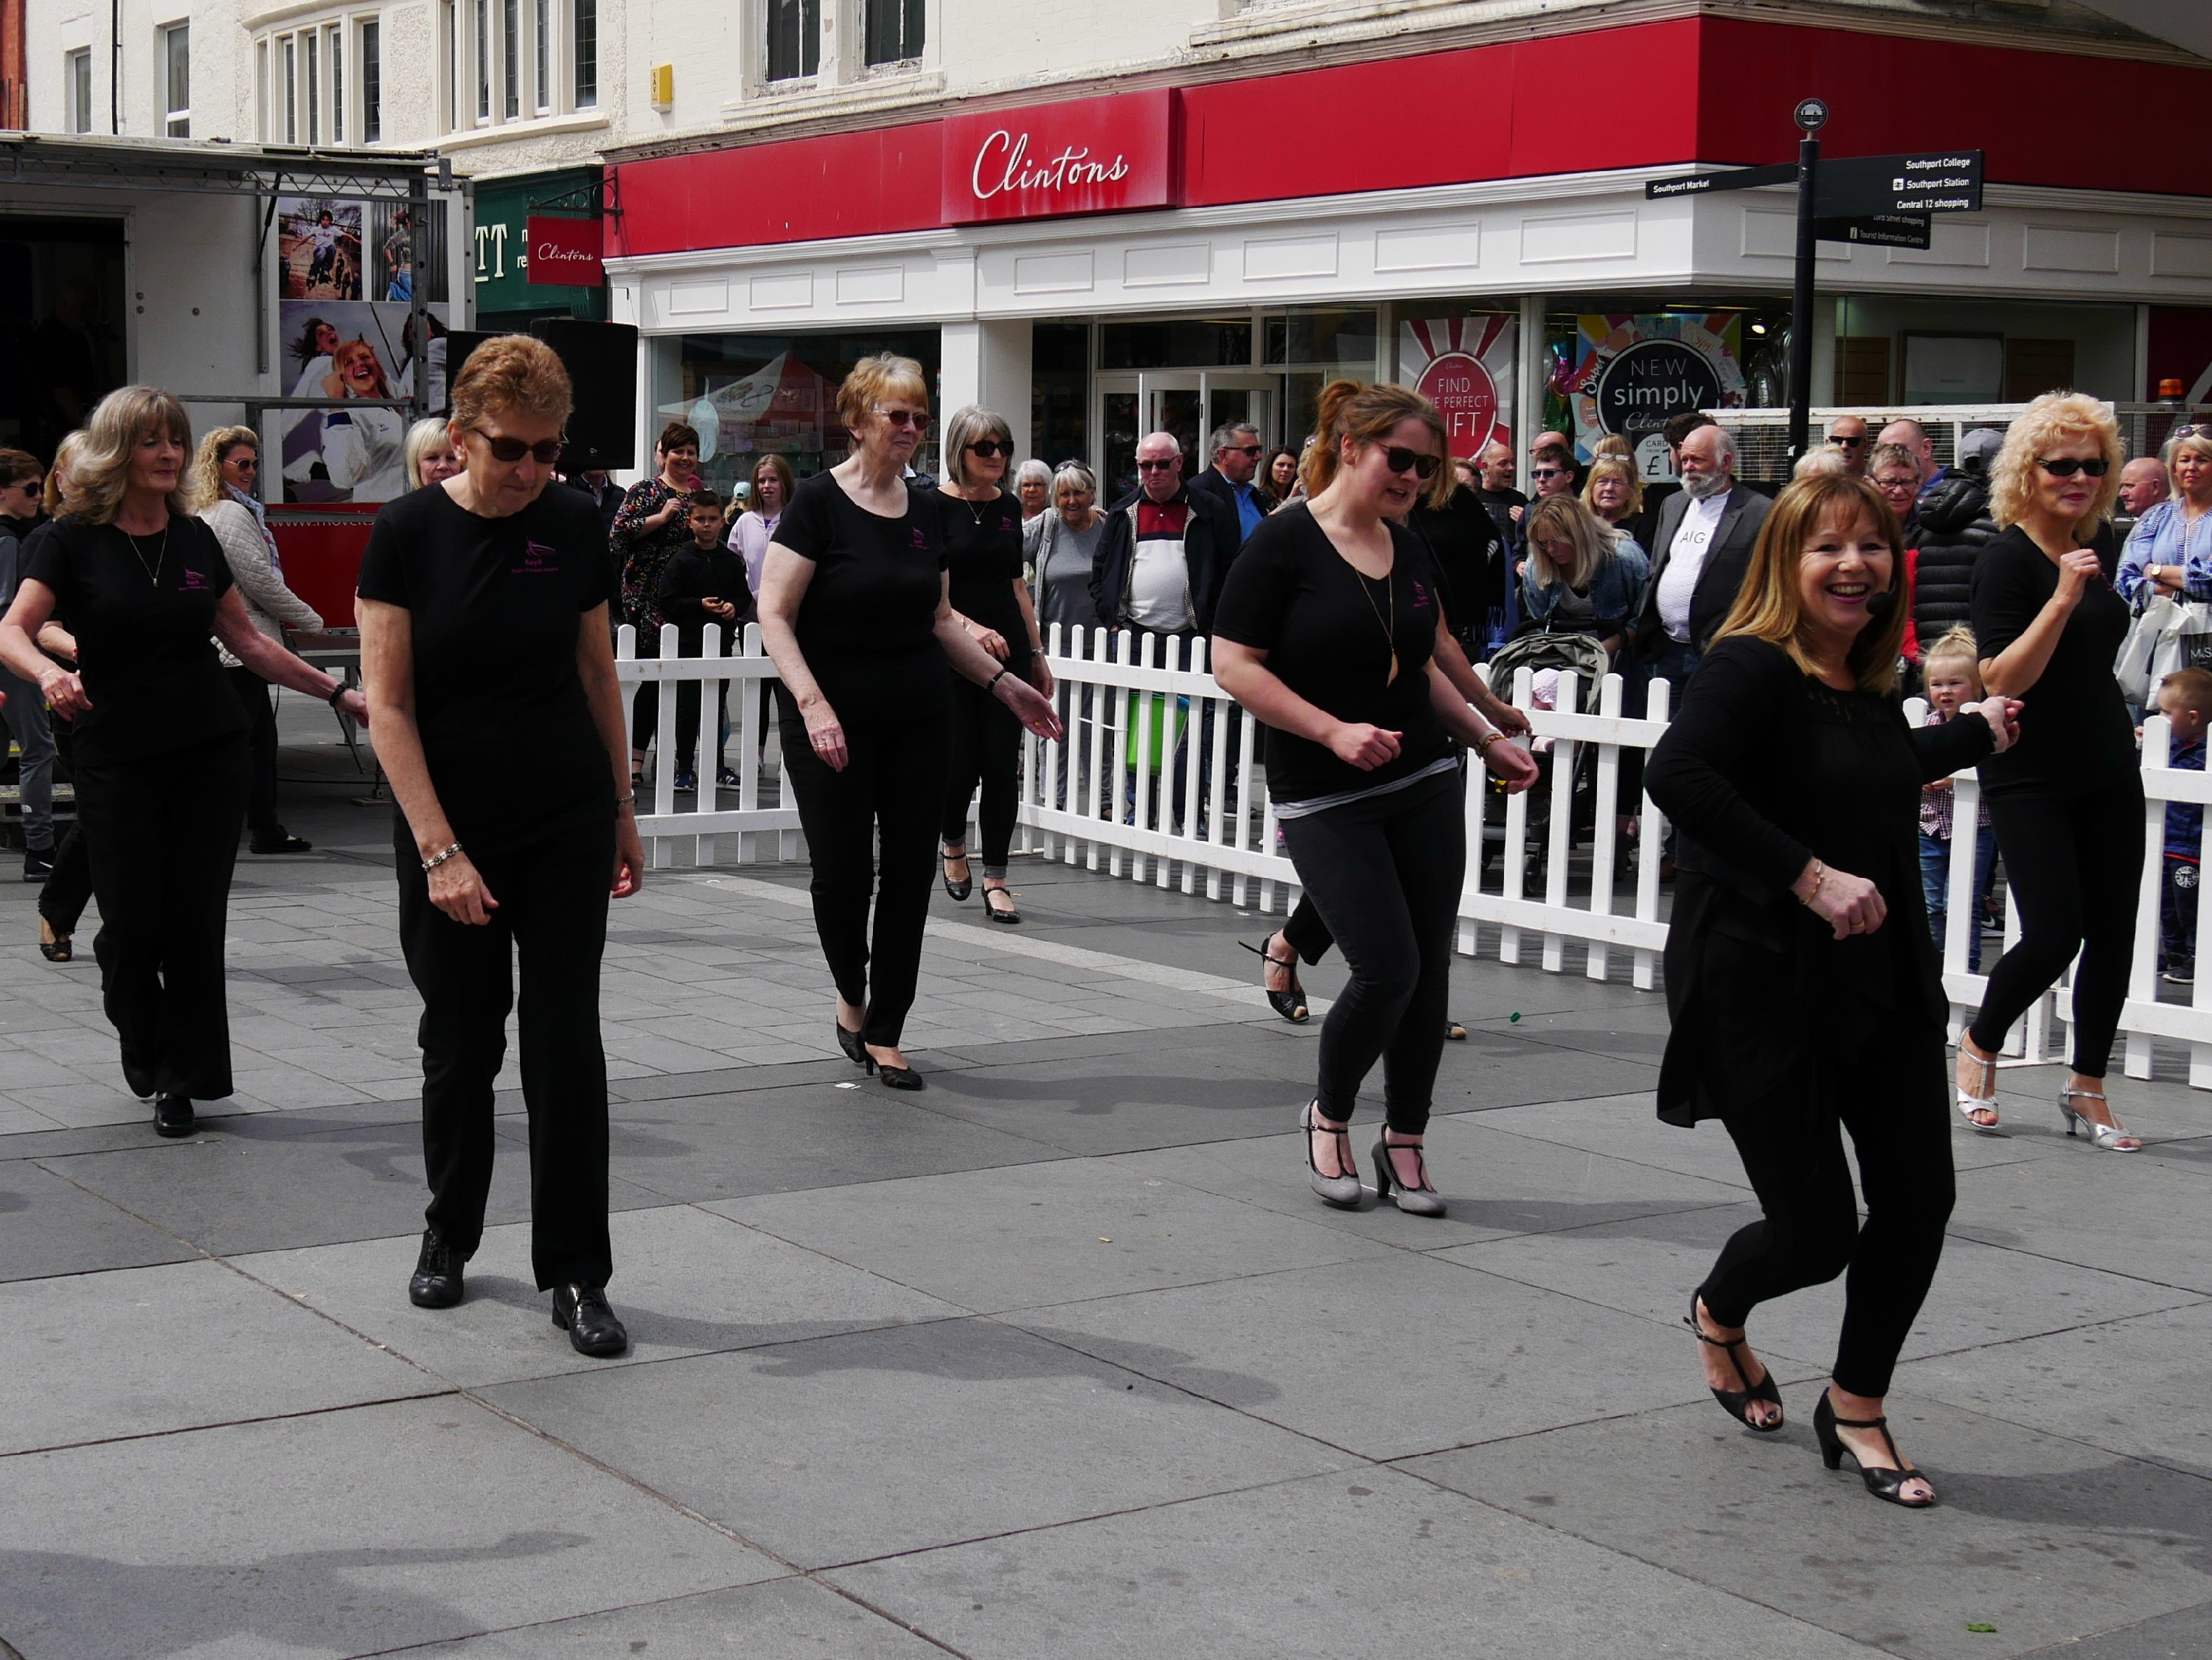 Dancing in Chapel Street